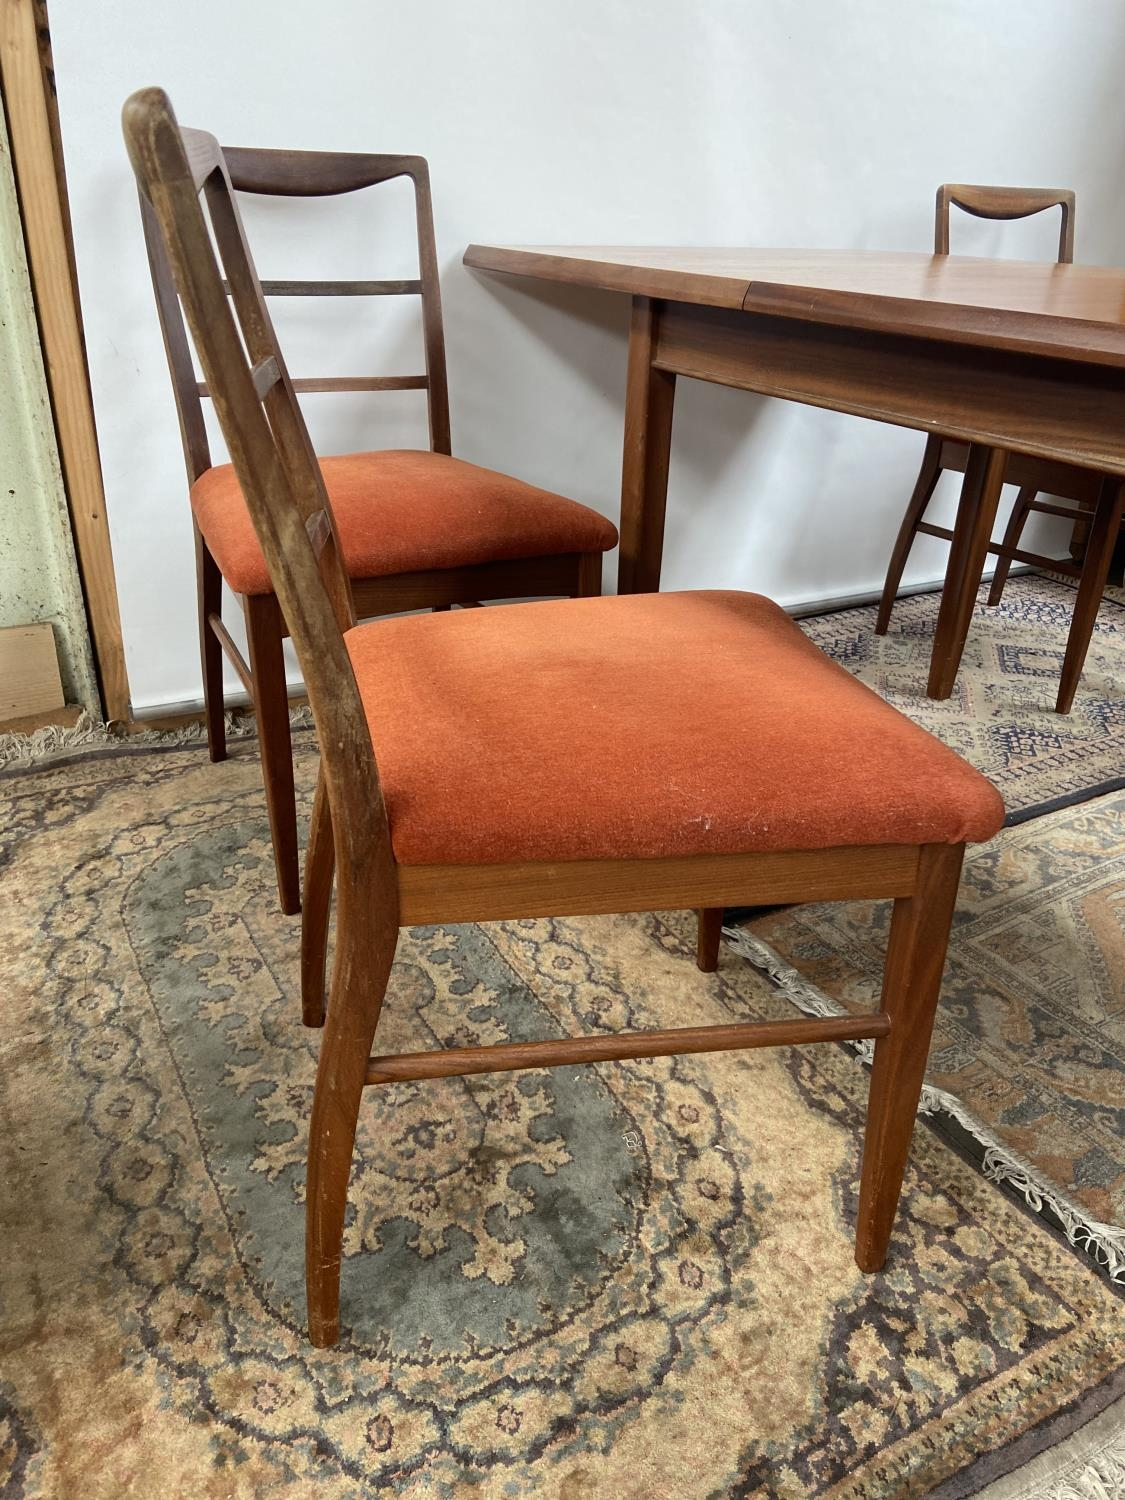 A Retro mid century teak dining table and four matching chairs produced by Vanson. [Table extended - Image 4 of 13